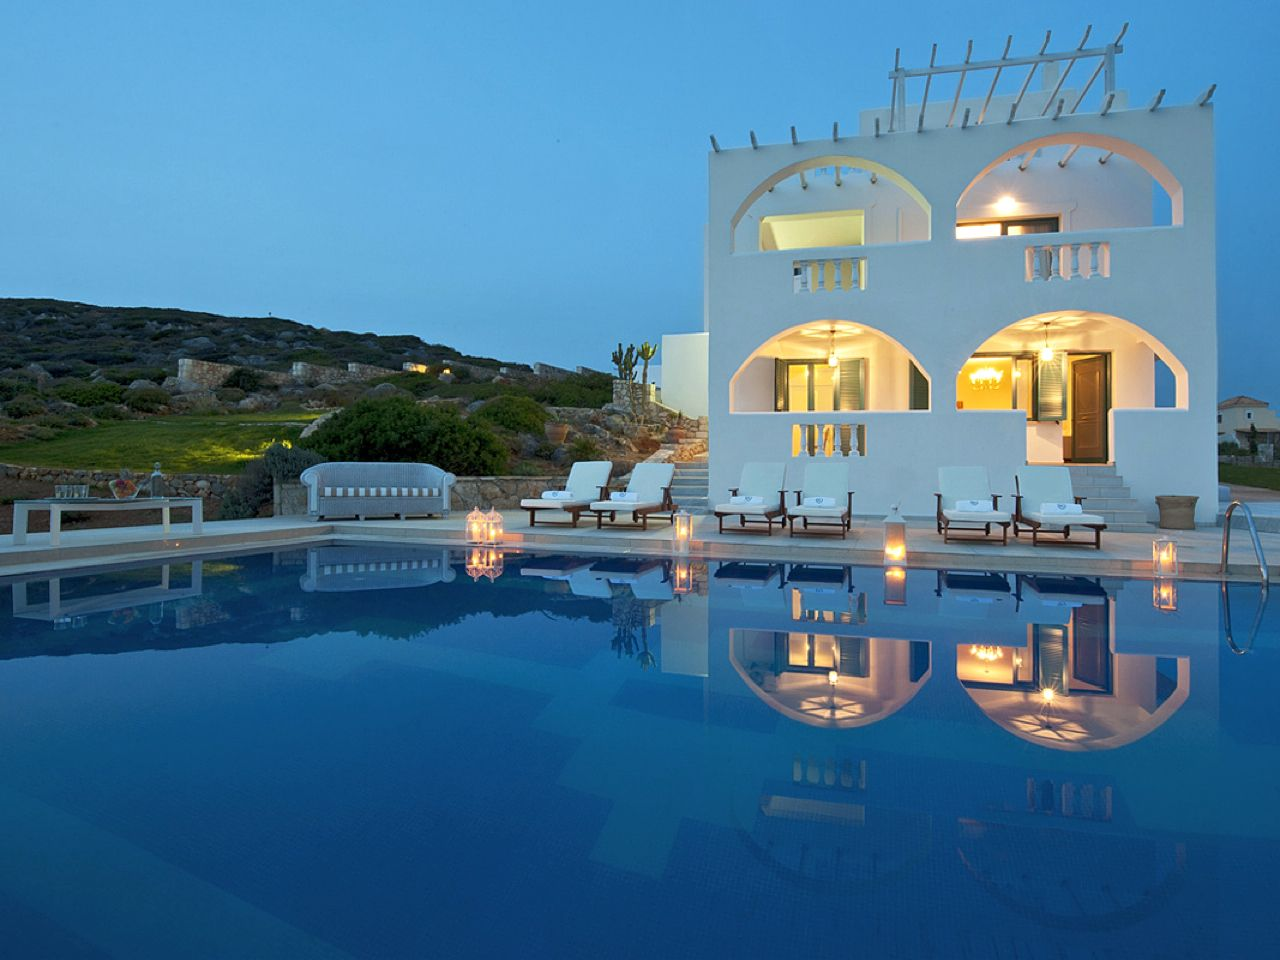 NEW on CreteTravel.com : A unique luxurious #villa sleeping up to 12 people with stunning sea views, private pool and a peaceful location near #Chania town. Villa Chrissi : http://www.cretetravel.com/hotel/Villa-chrissi/